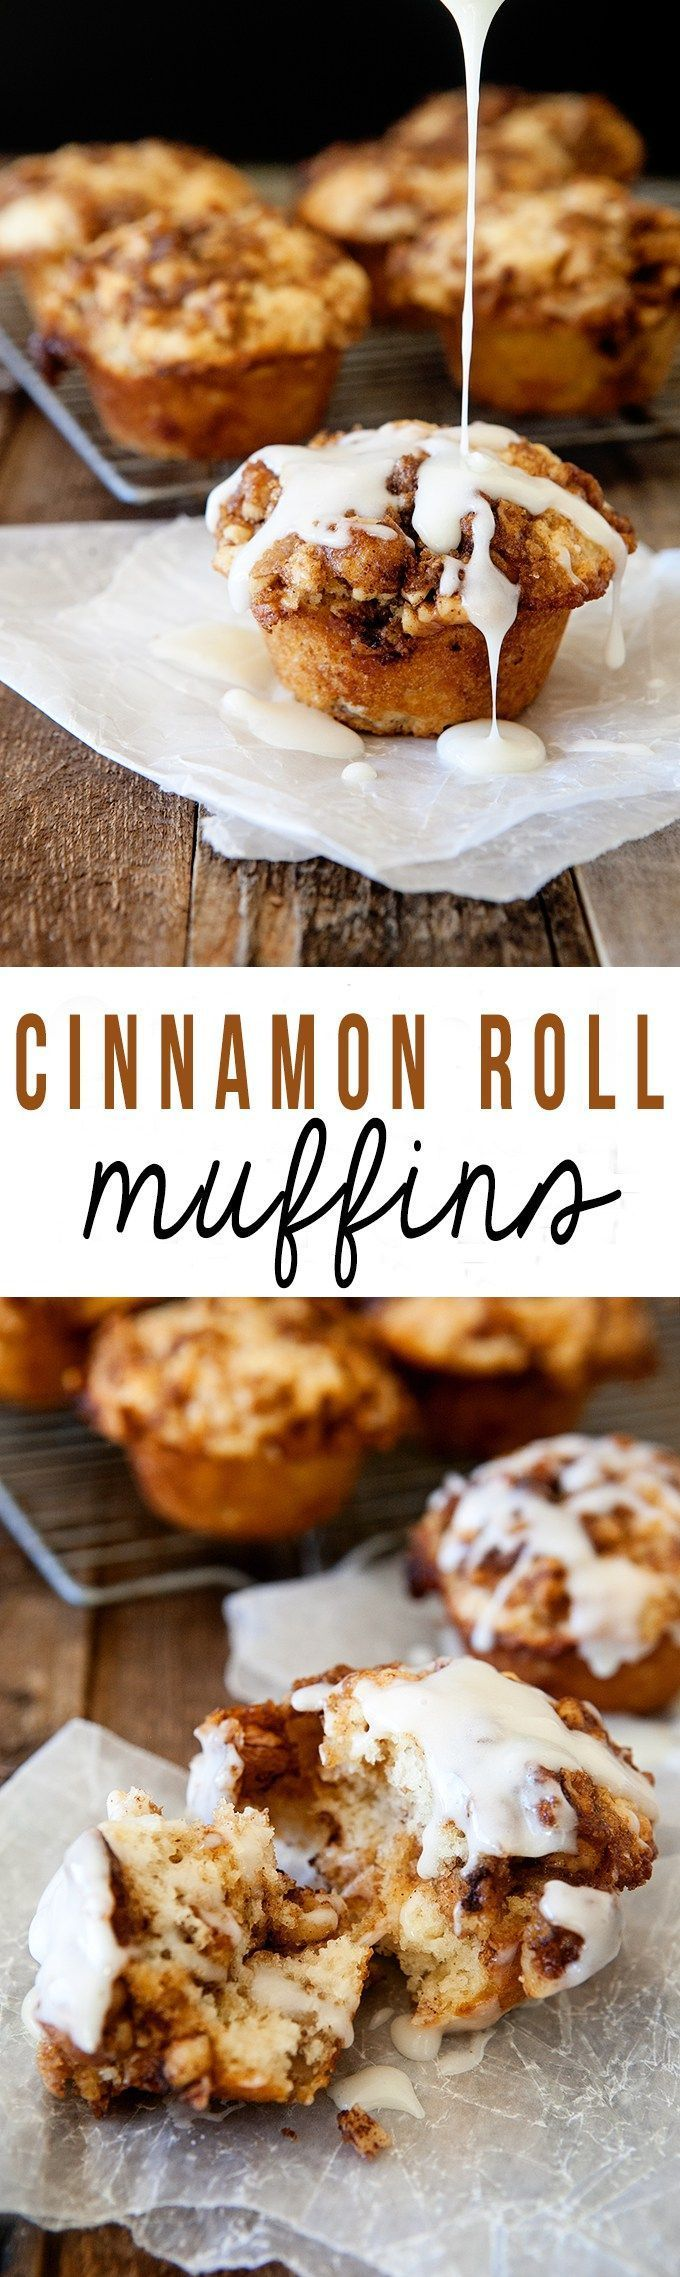 Cinnamon Roll Muffins - Easier than a cinnamon roll but with the same delicious…